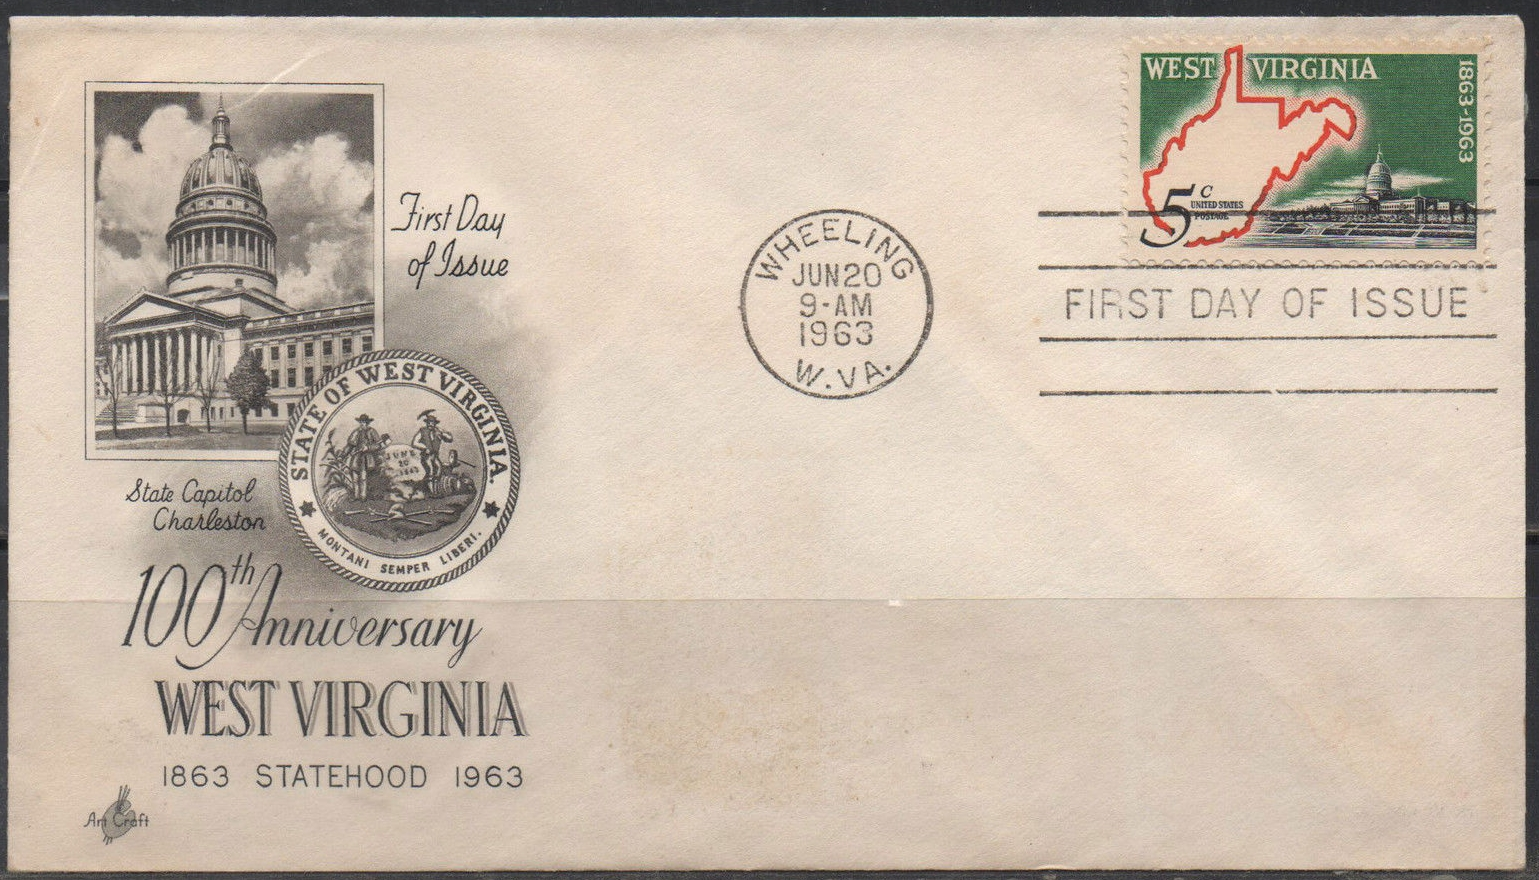 United States - Scott #1232 (1963) first day cover, ArtCraft cachet